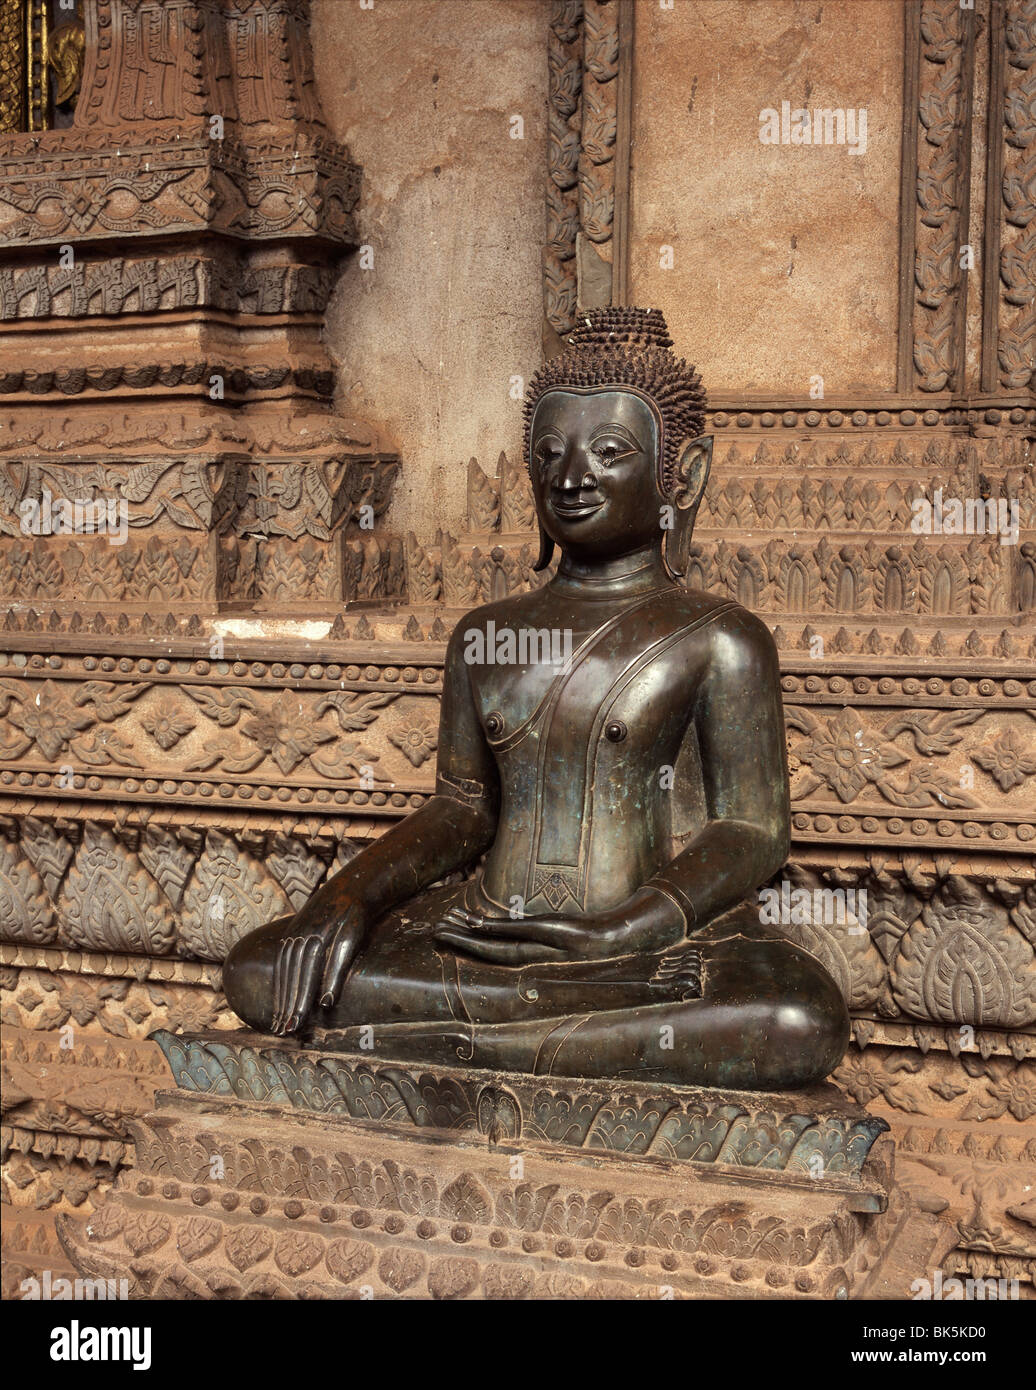 Pieni Buddha dating